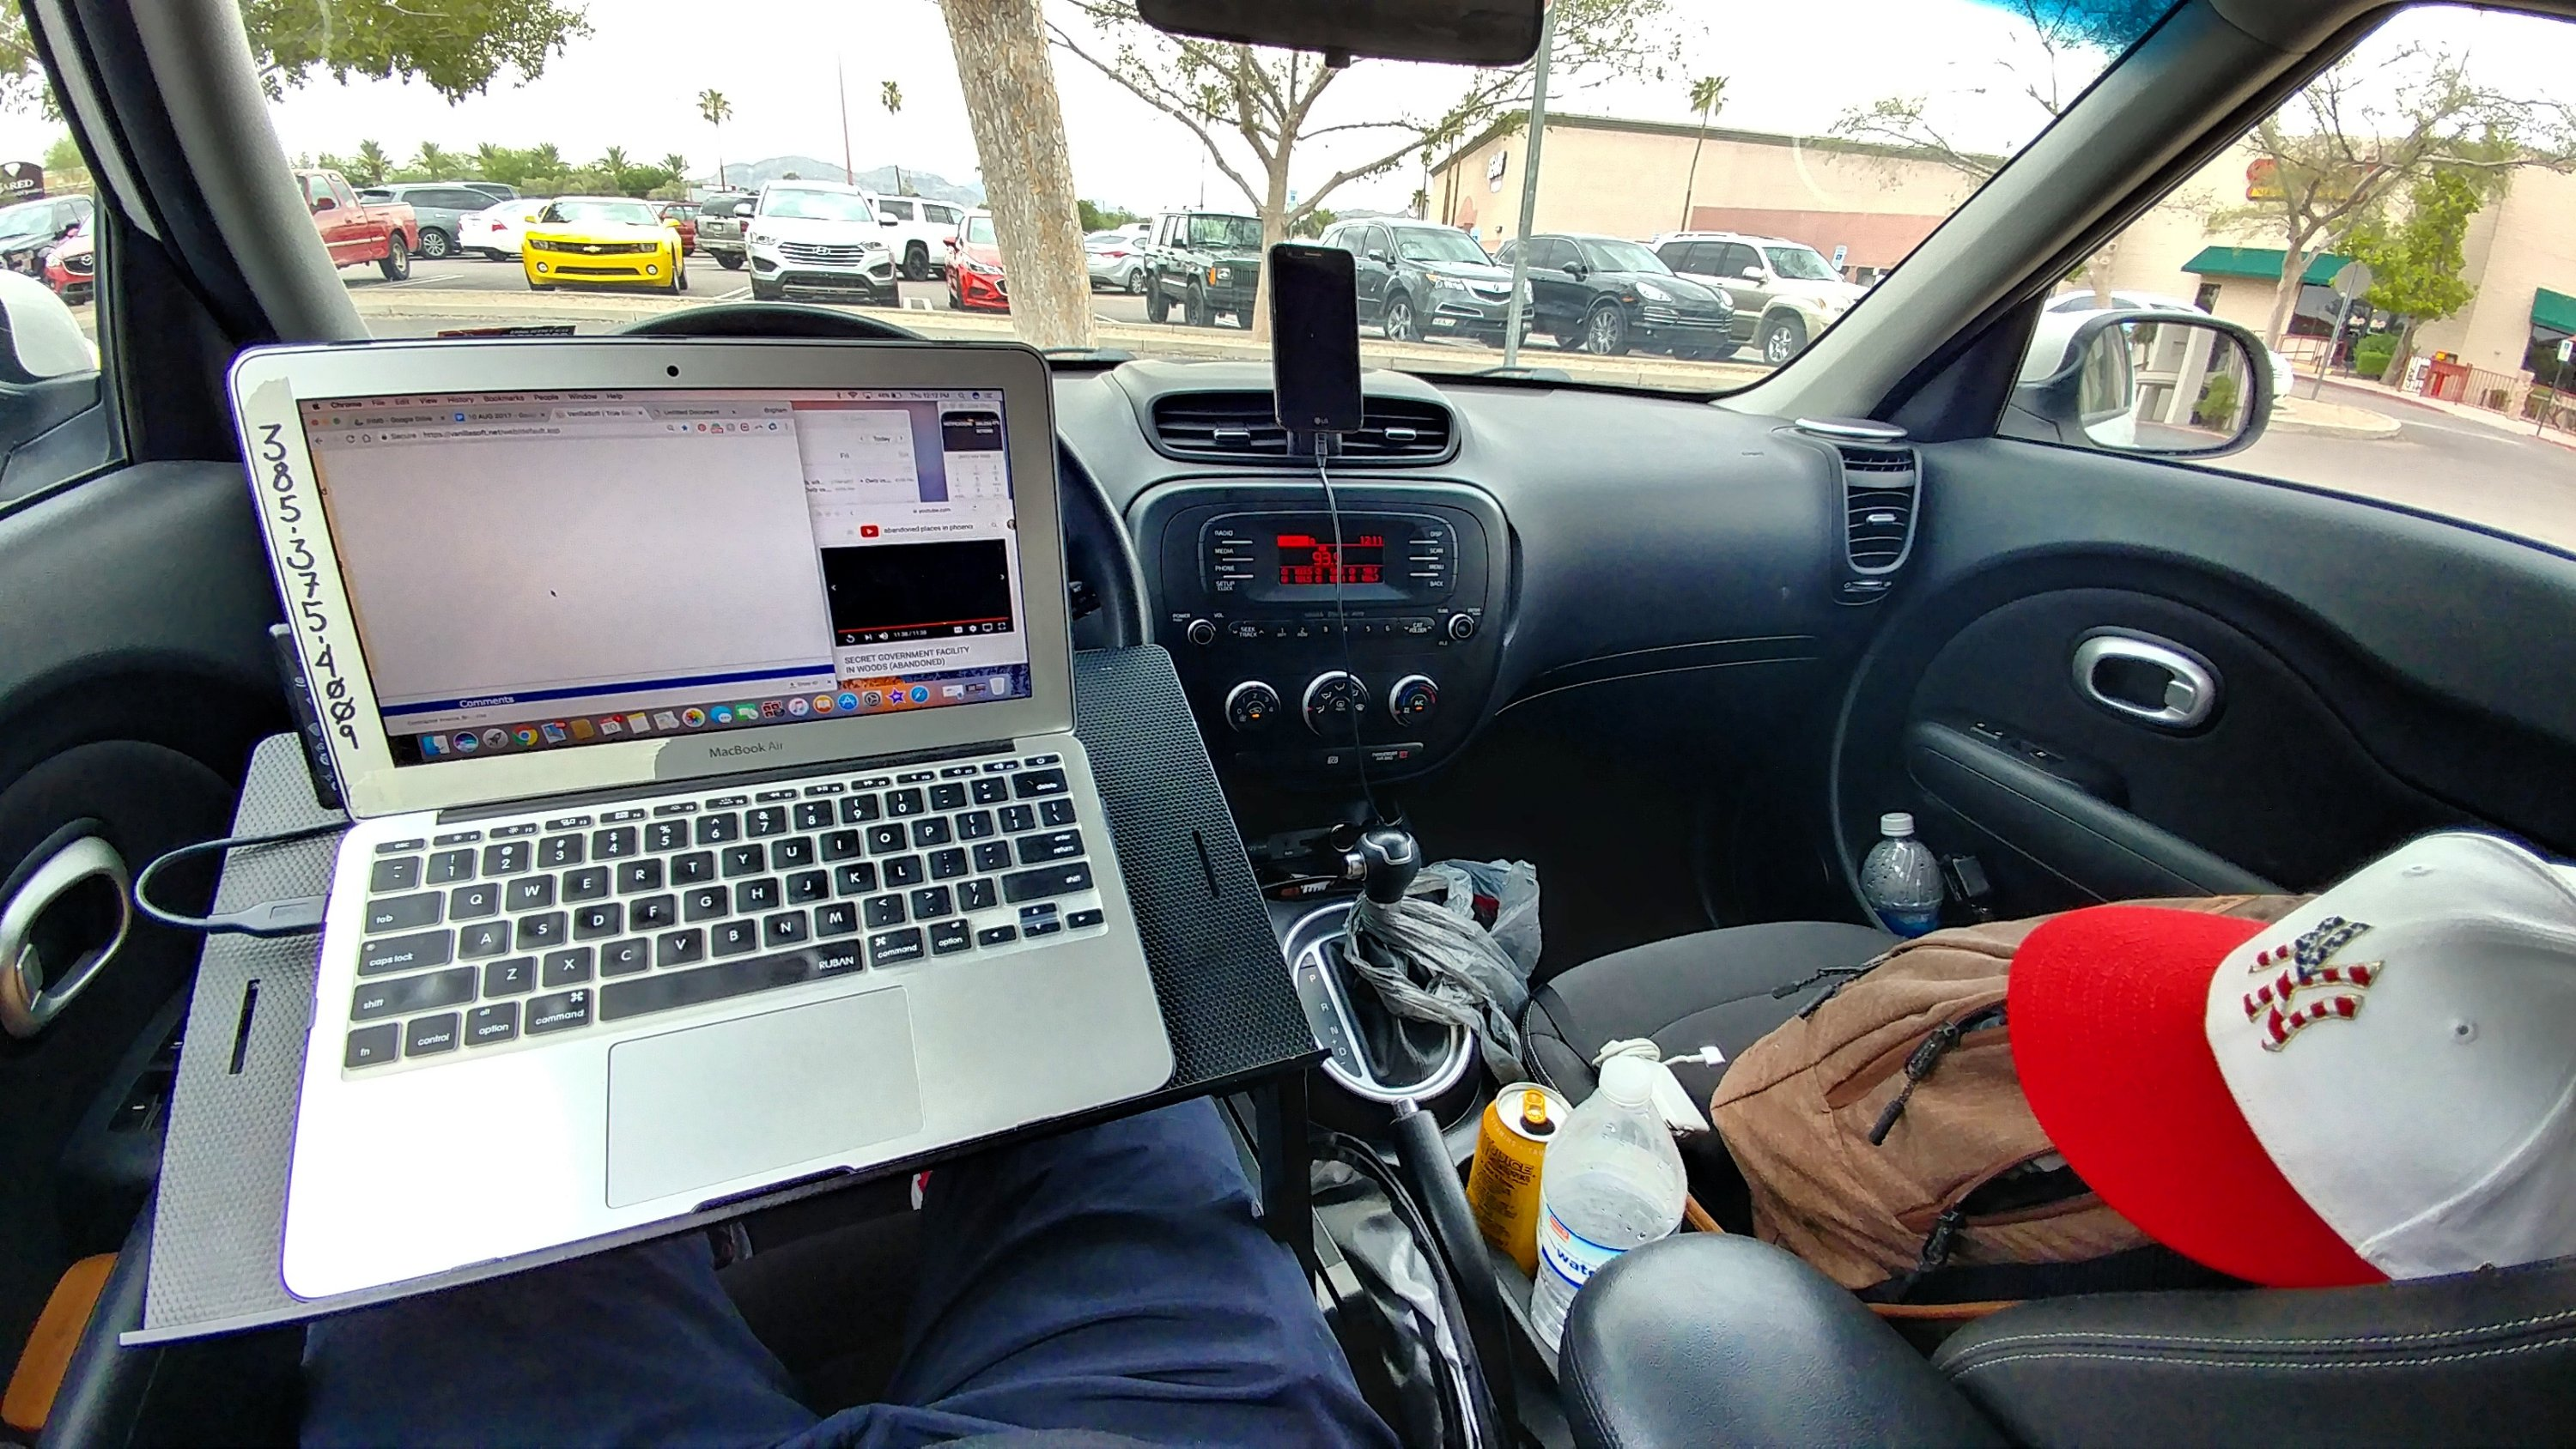 The Challenges of Mobile Work: Part 1